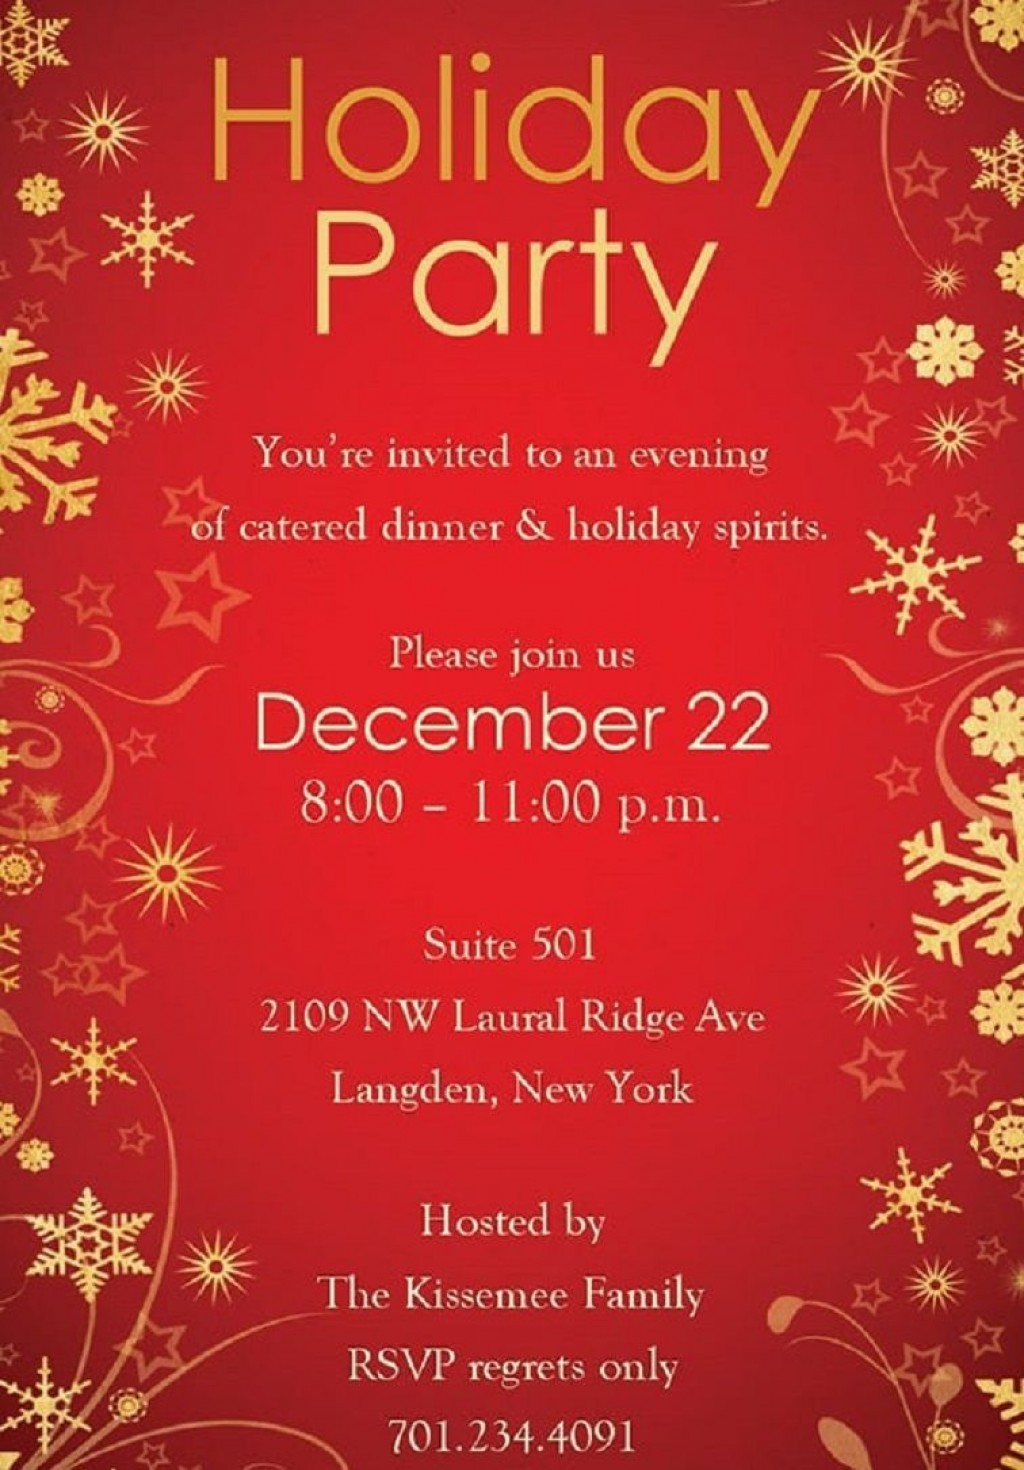 001 Unusual Holiday Party Invite Template Word Photo  Cocktail Invitation Wording Sample Microsoft ChristmaLarge